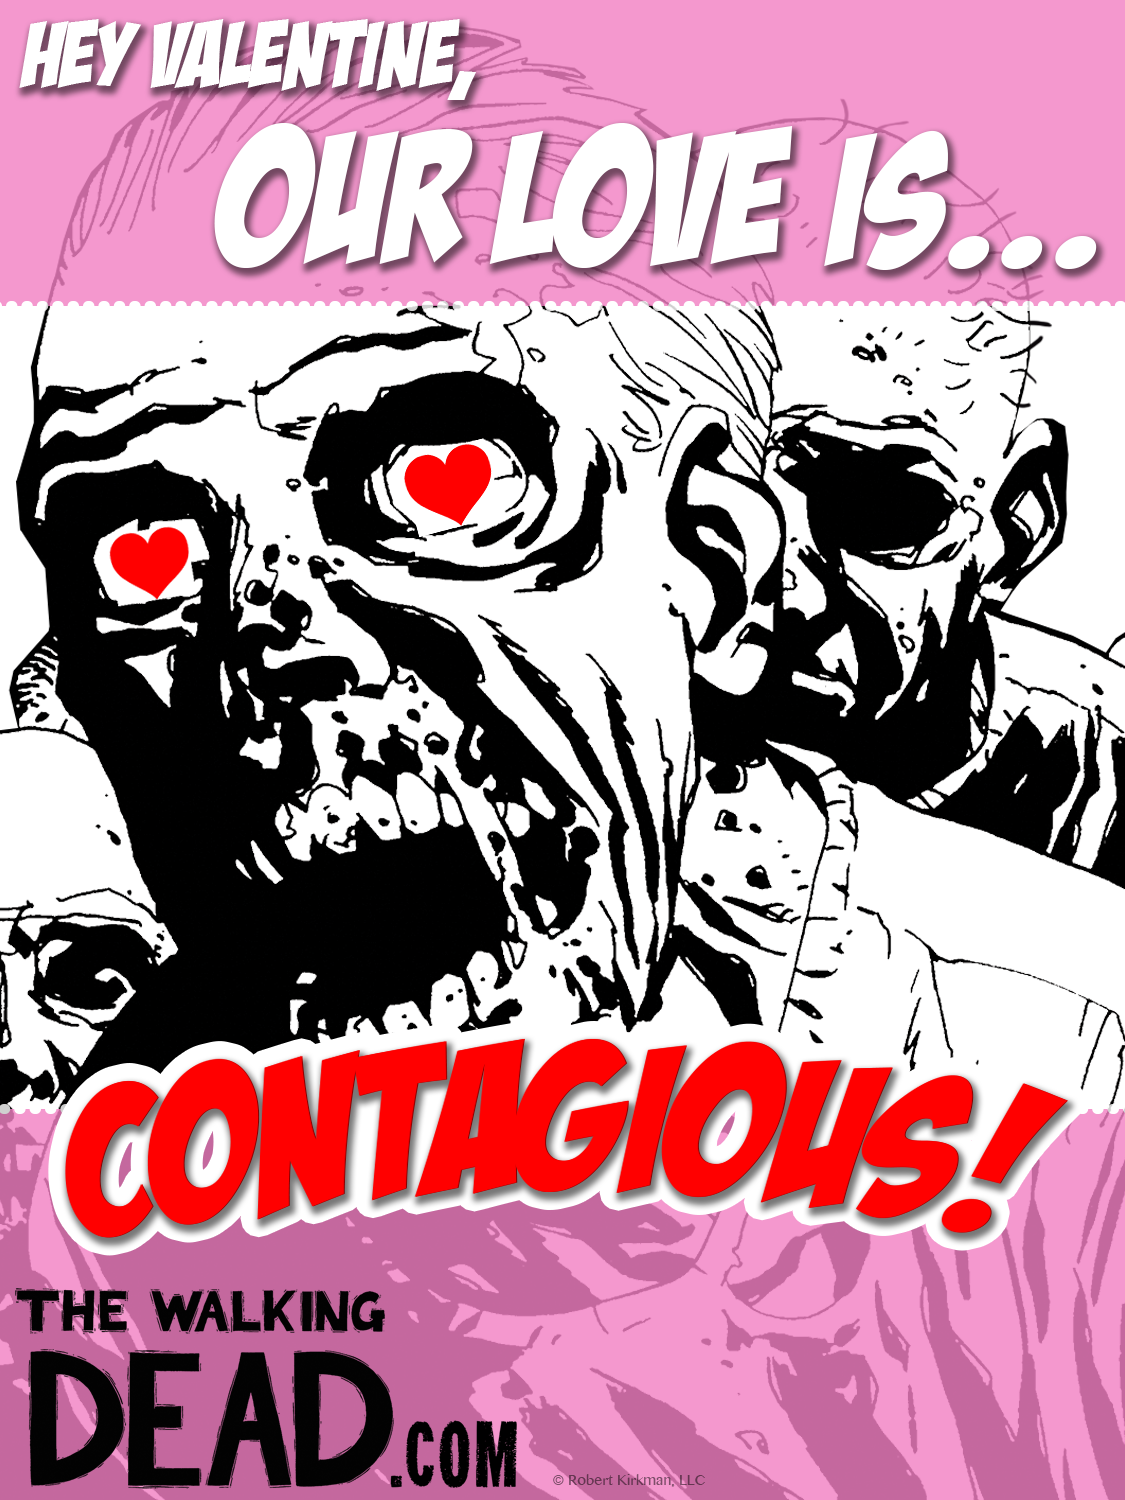 Walking Dead Valentines Contagious - Show Your Love You Care, and Scare, With a The Walking Dead Valentine